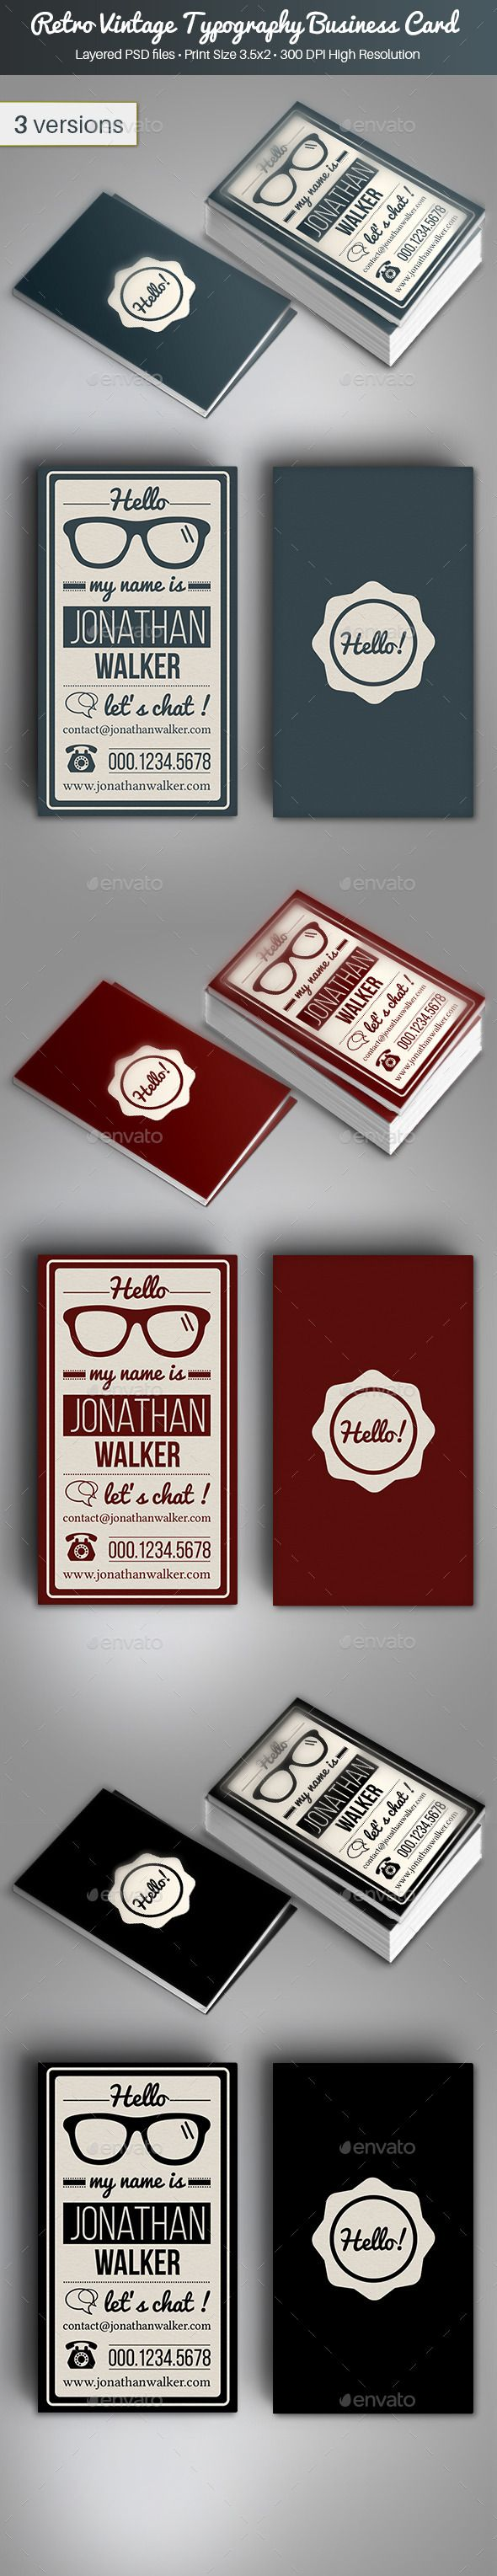 Retro vintage typography business card business card templates retro vintage typography business card template psd buy and download httpgraphicriveritemretro vintage typography business card9983492ref reheart Choice Image